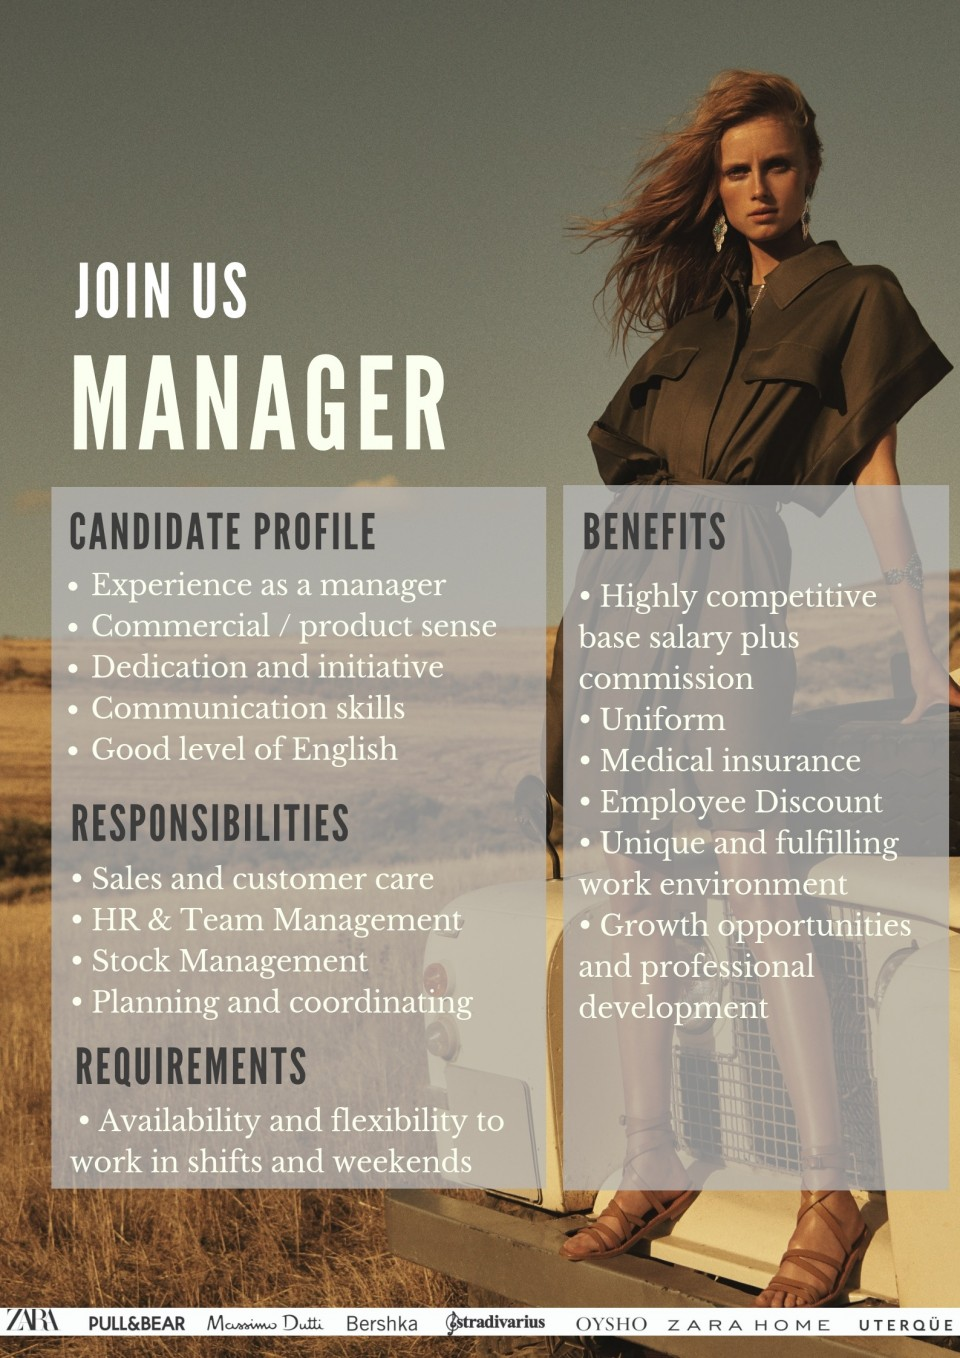 Join our team as manager!